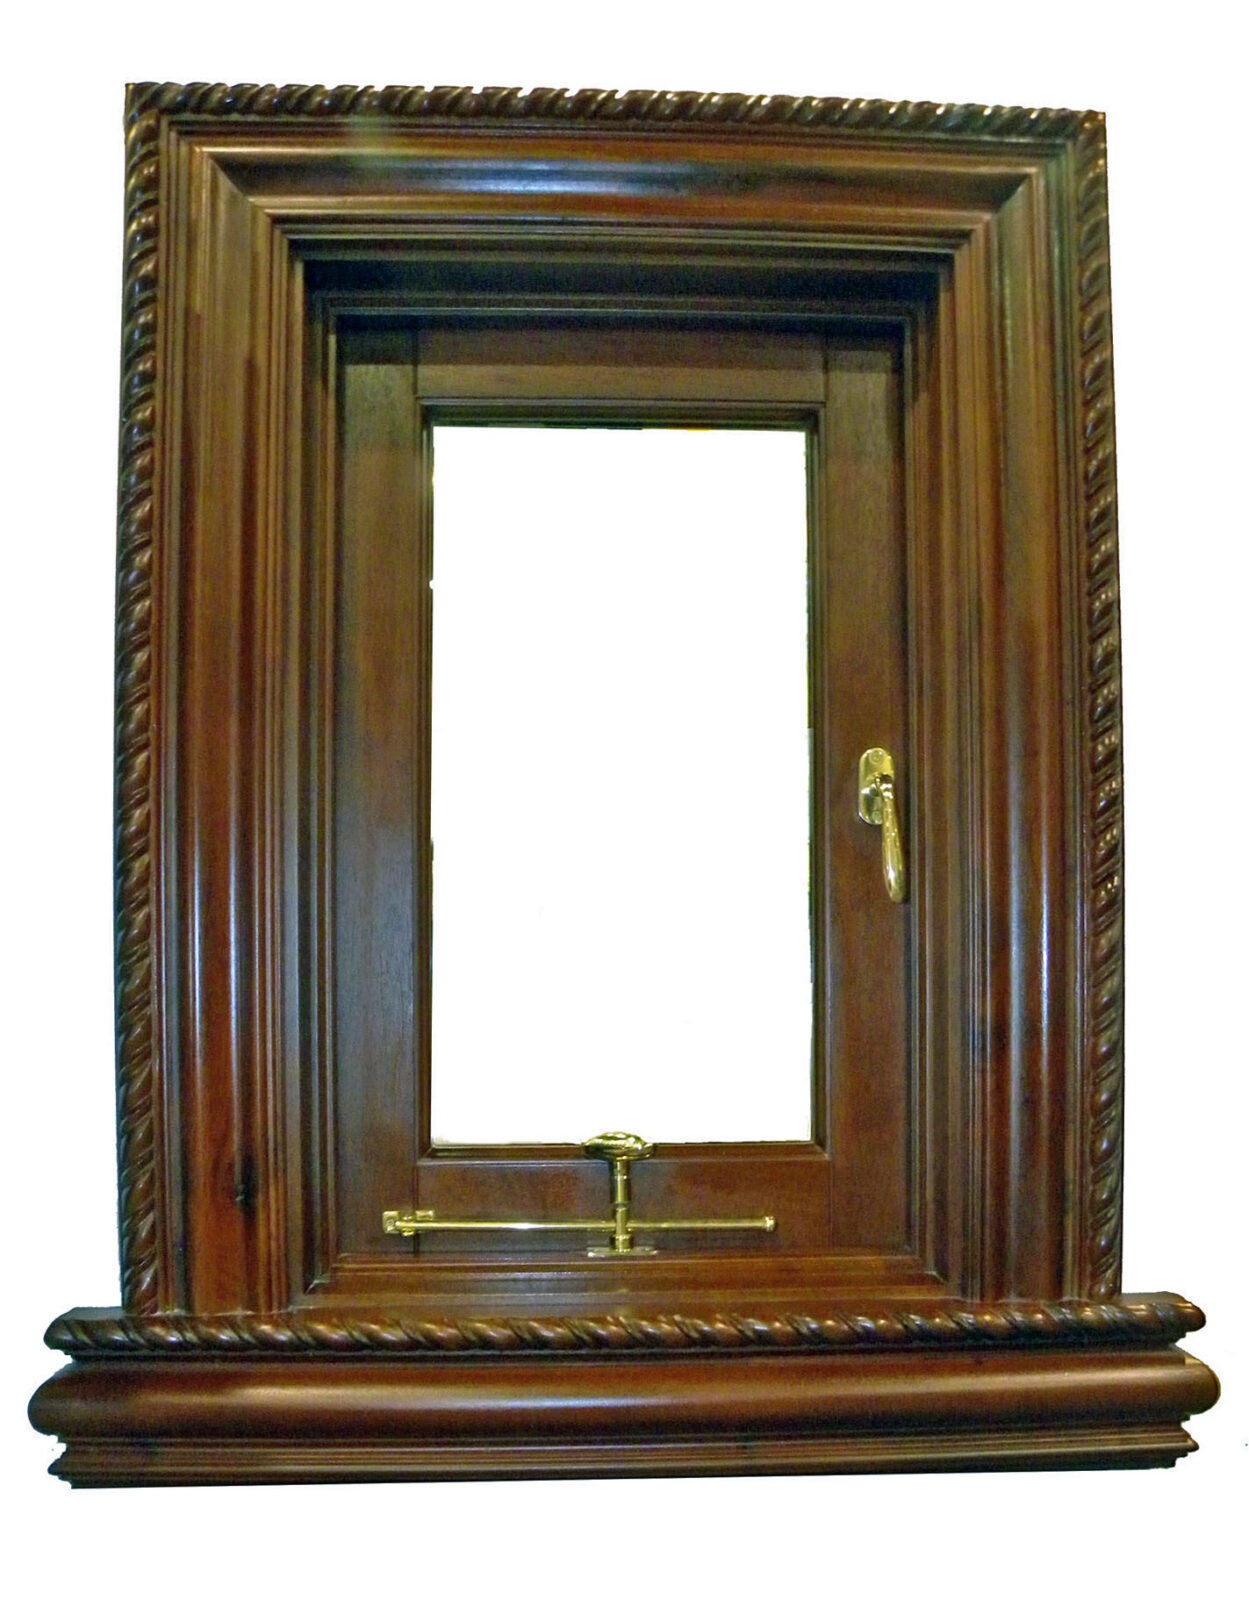 BOTICELLI MAHOGANY CARVED WINDOW